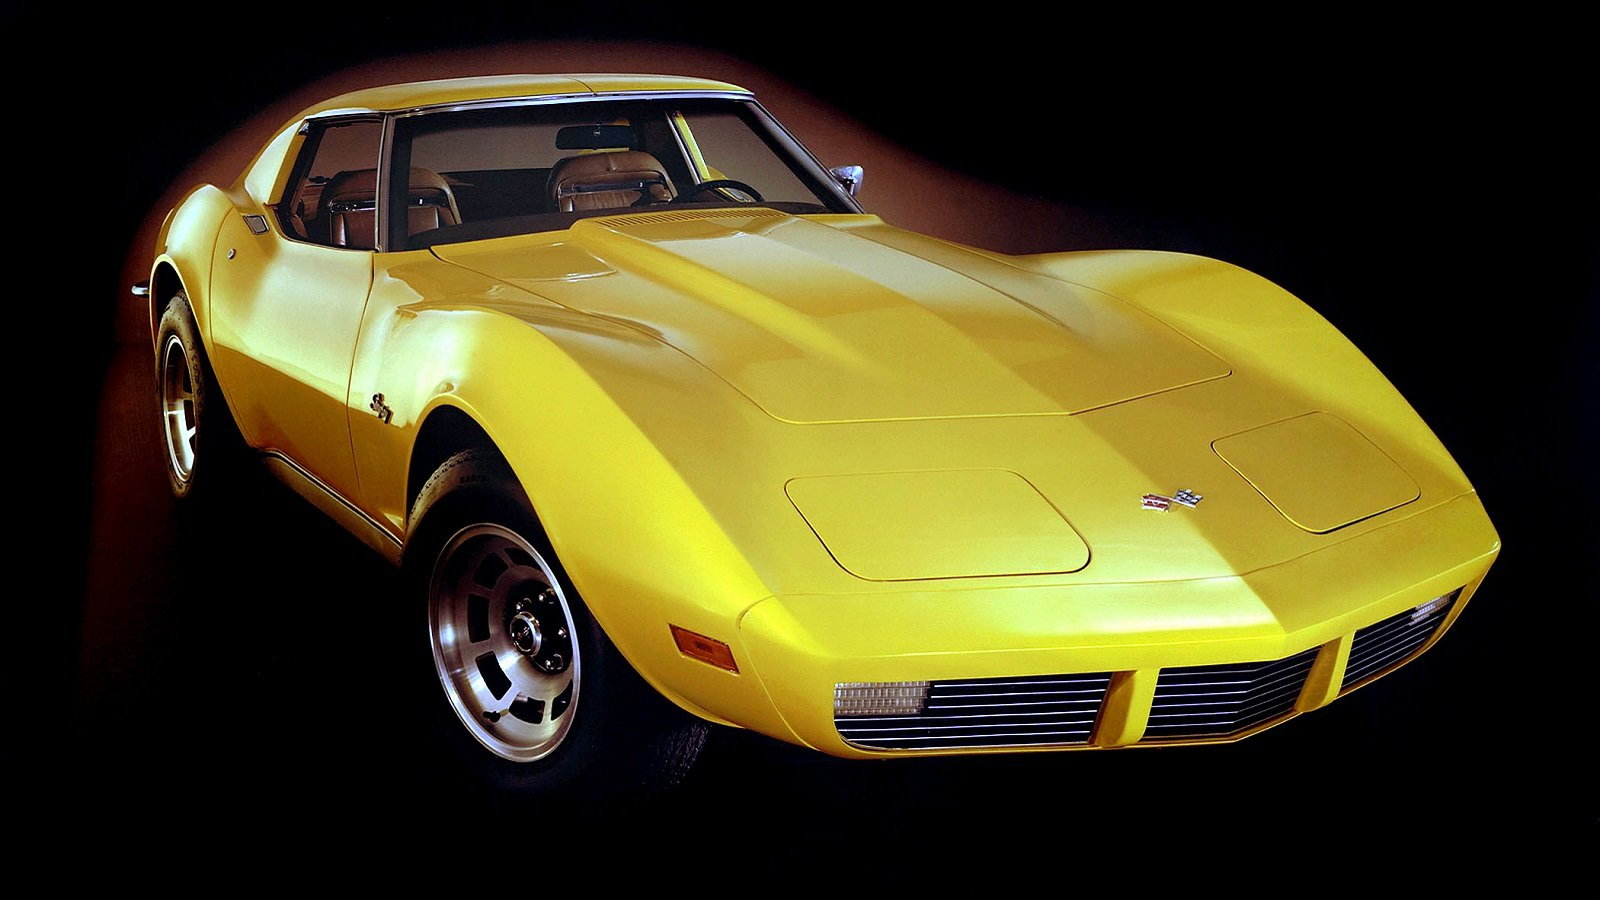 C3 Corvette Design Updates Through the Years